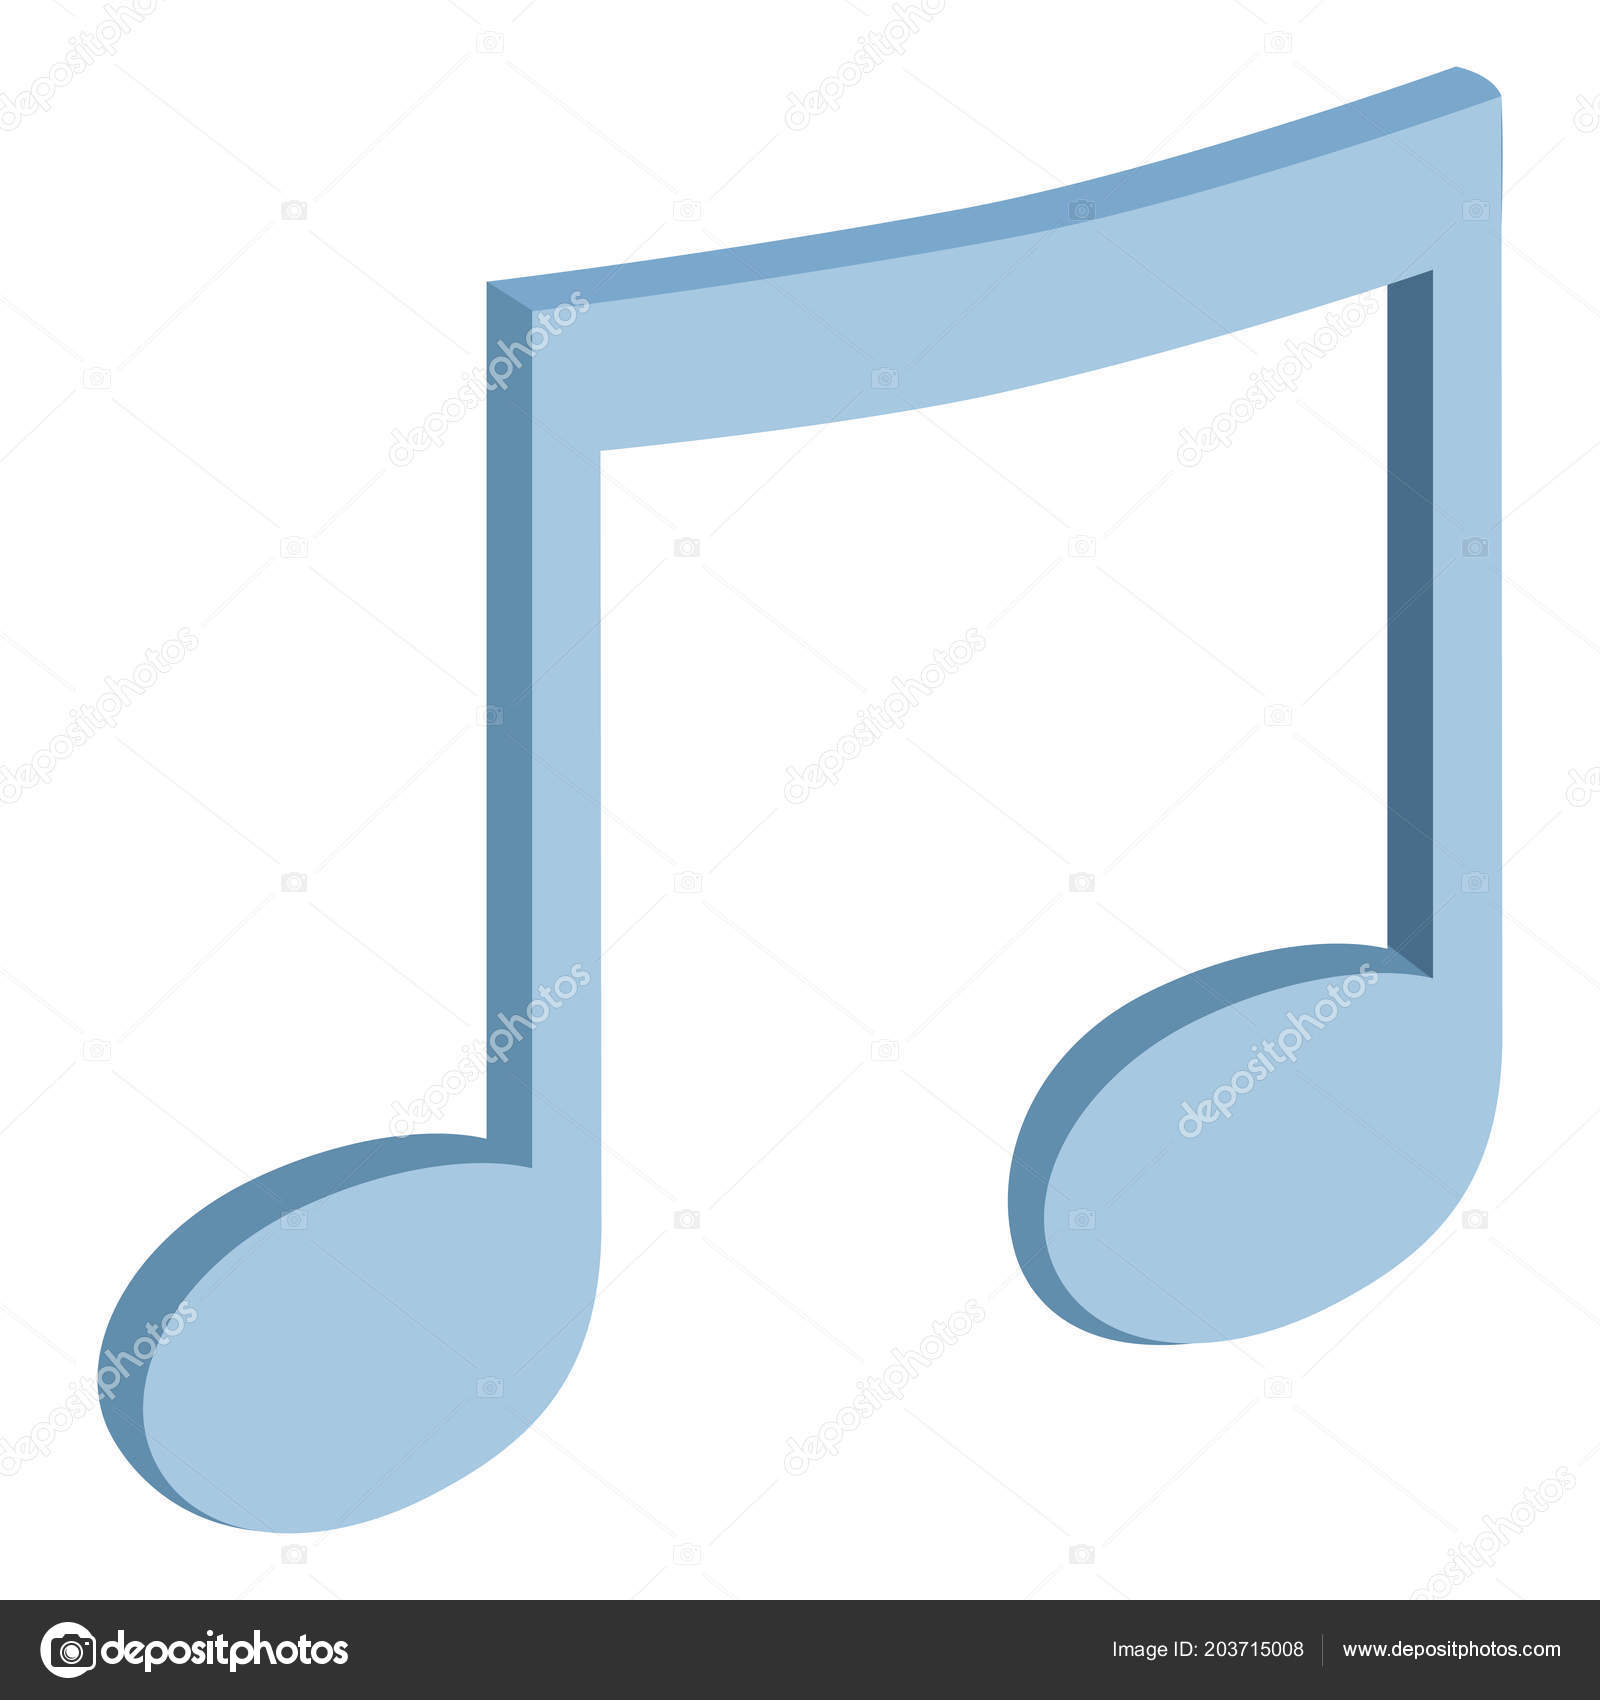 blue colored musical note three dimensional view white background